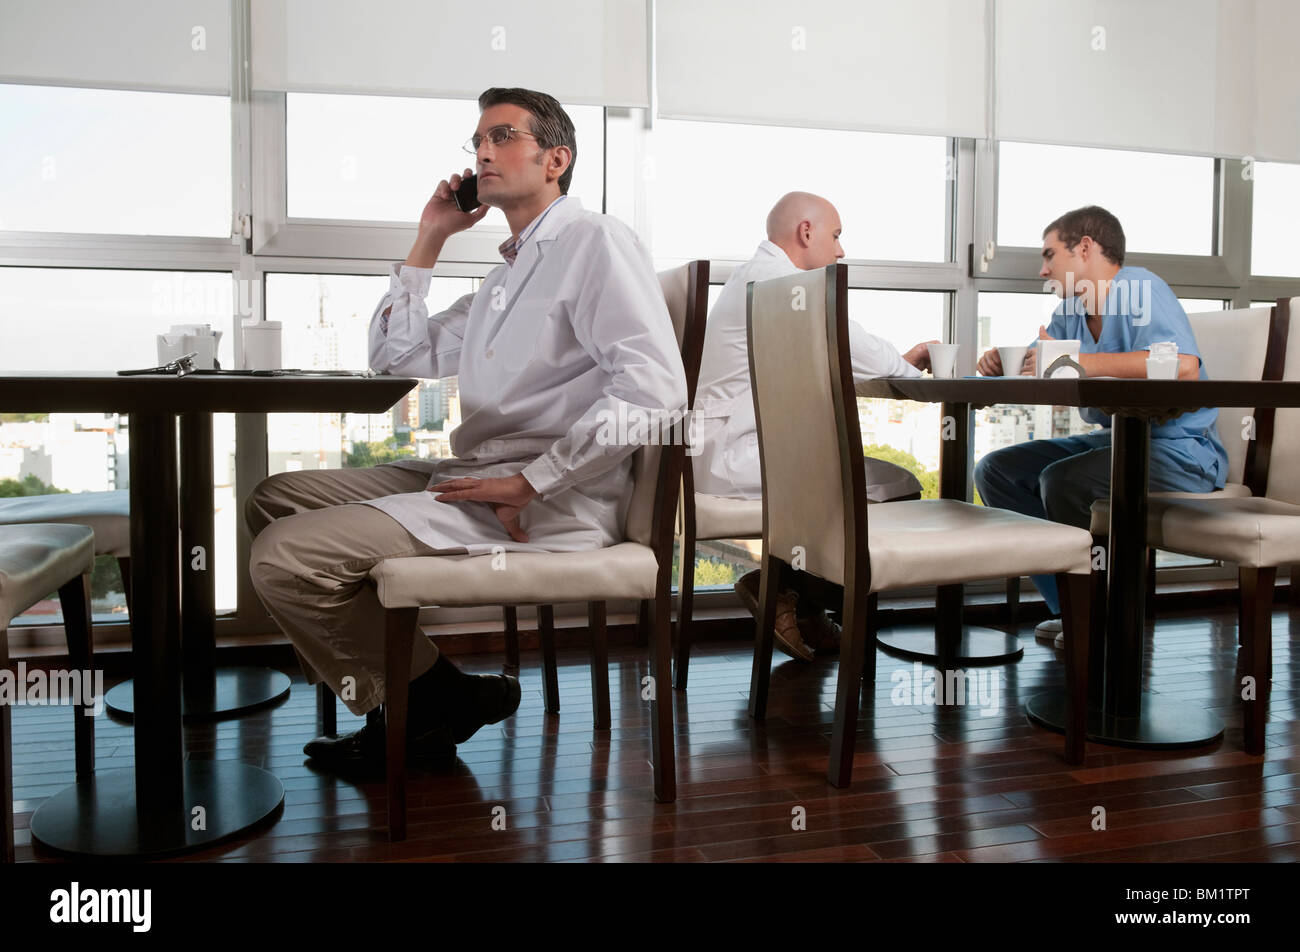 Doctors during coffee break a cafeteria - Stock Image